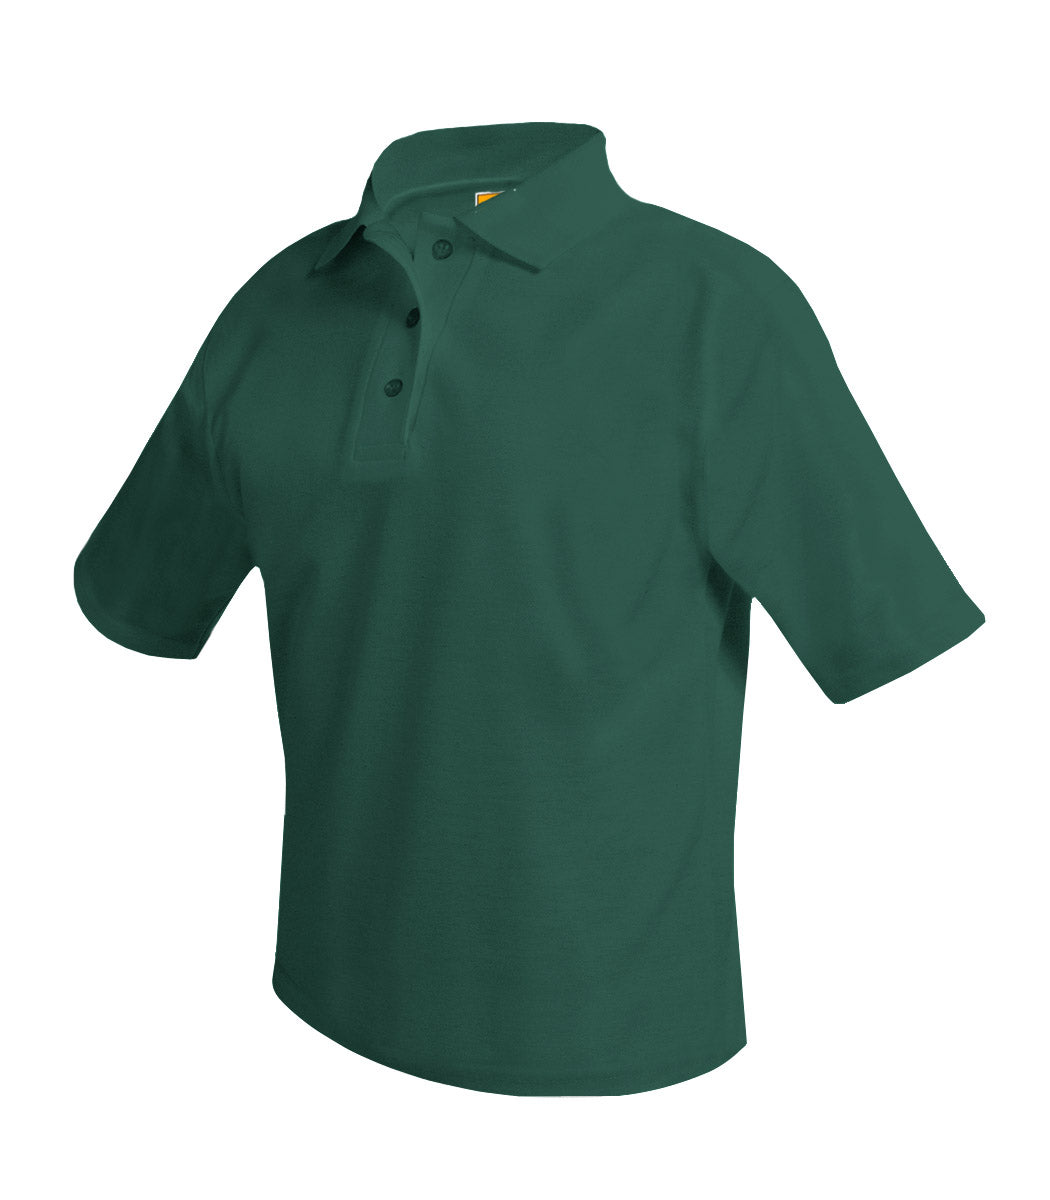 Sacred Heart Short Sleeve Polo Shirt Green